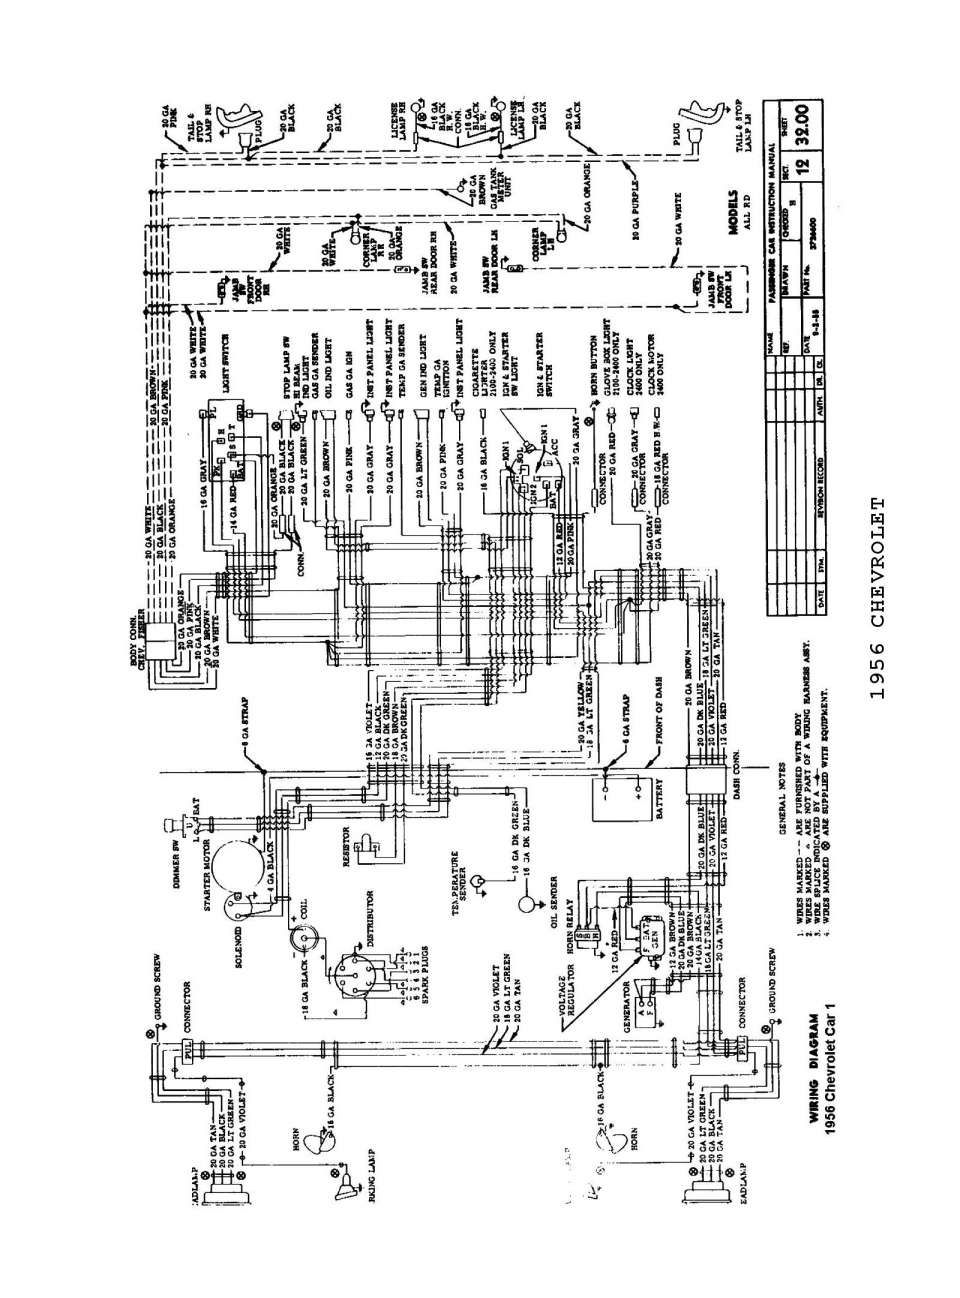 1993 Chevy Truck Wiring Diagram And Chevy Truck Ignition